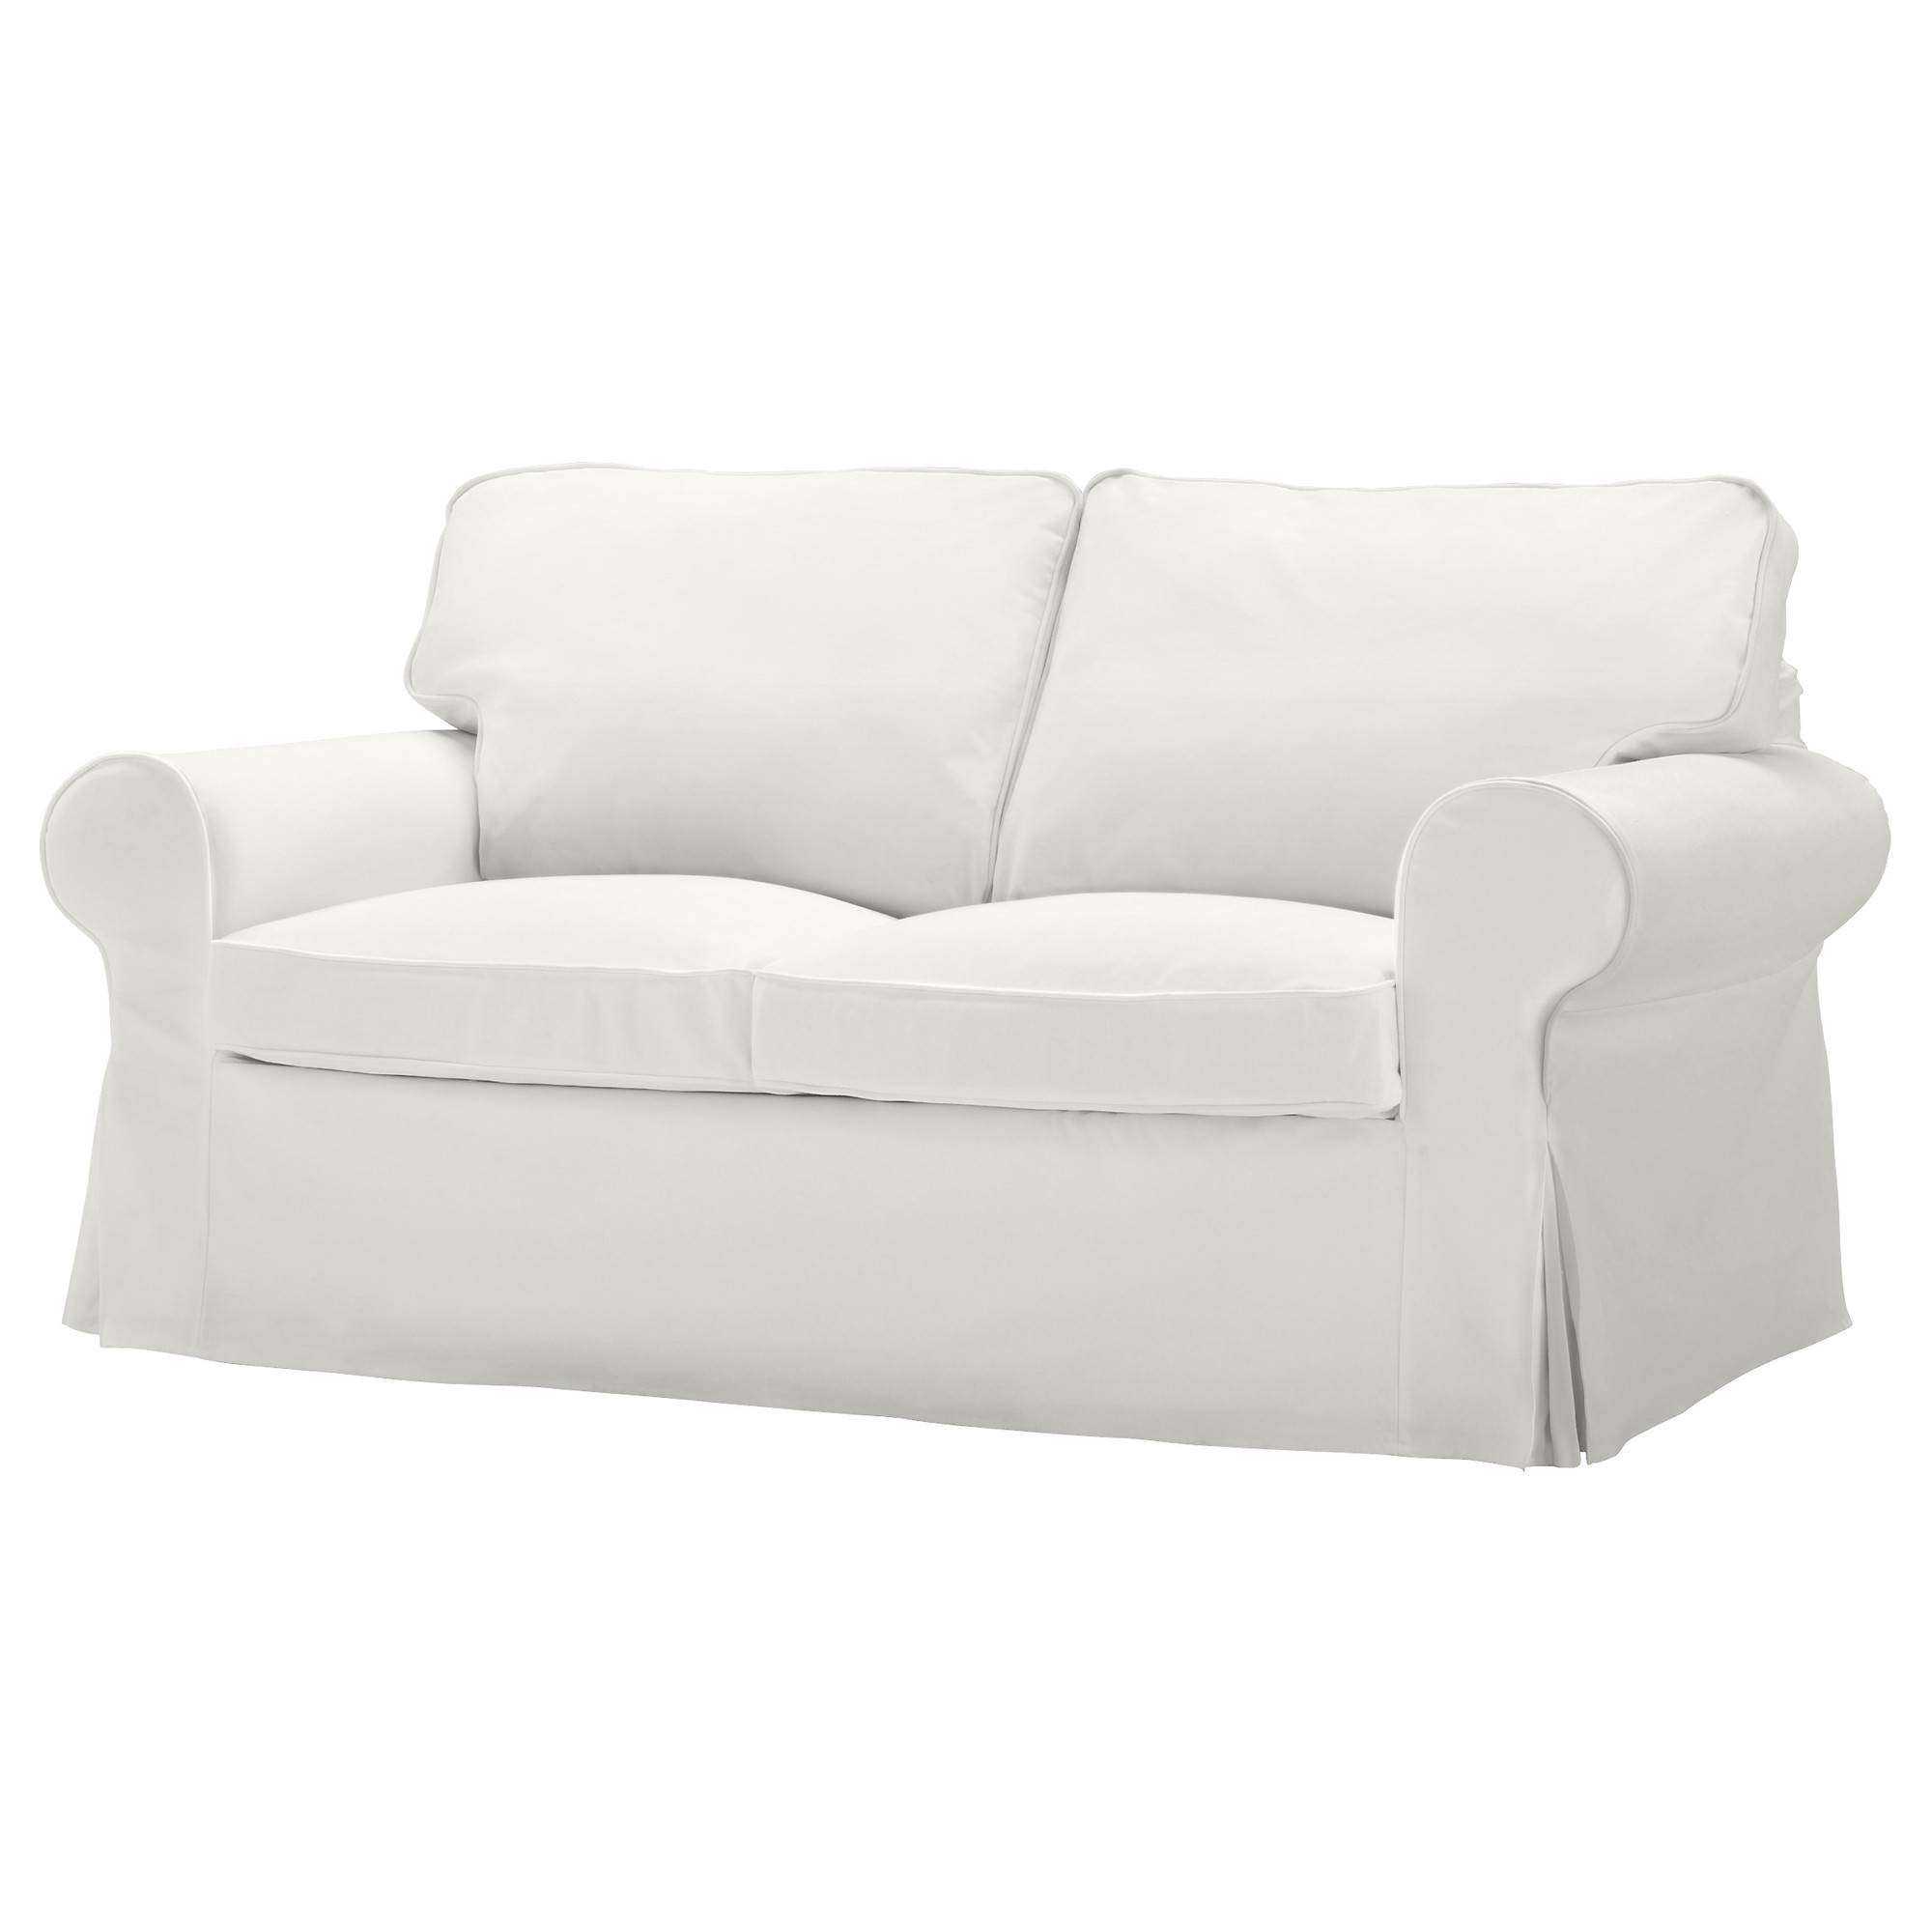 Loveseat Sleeper sofa Ikea Modern Best Of Ikea Loveseat Sleeper sofas Online